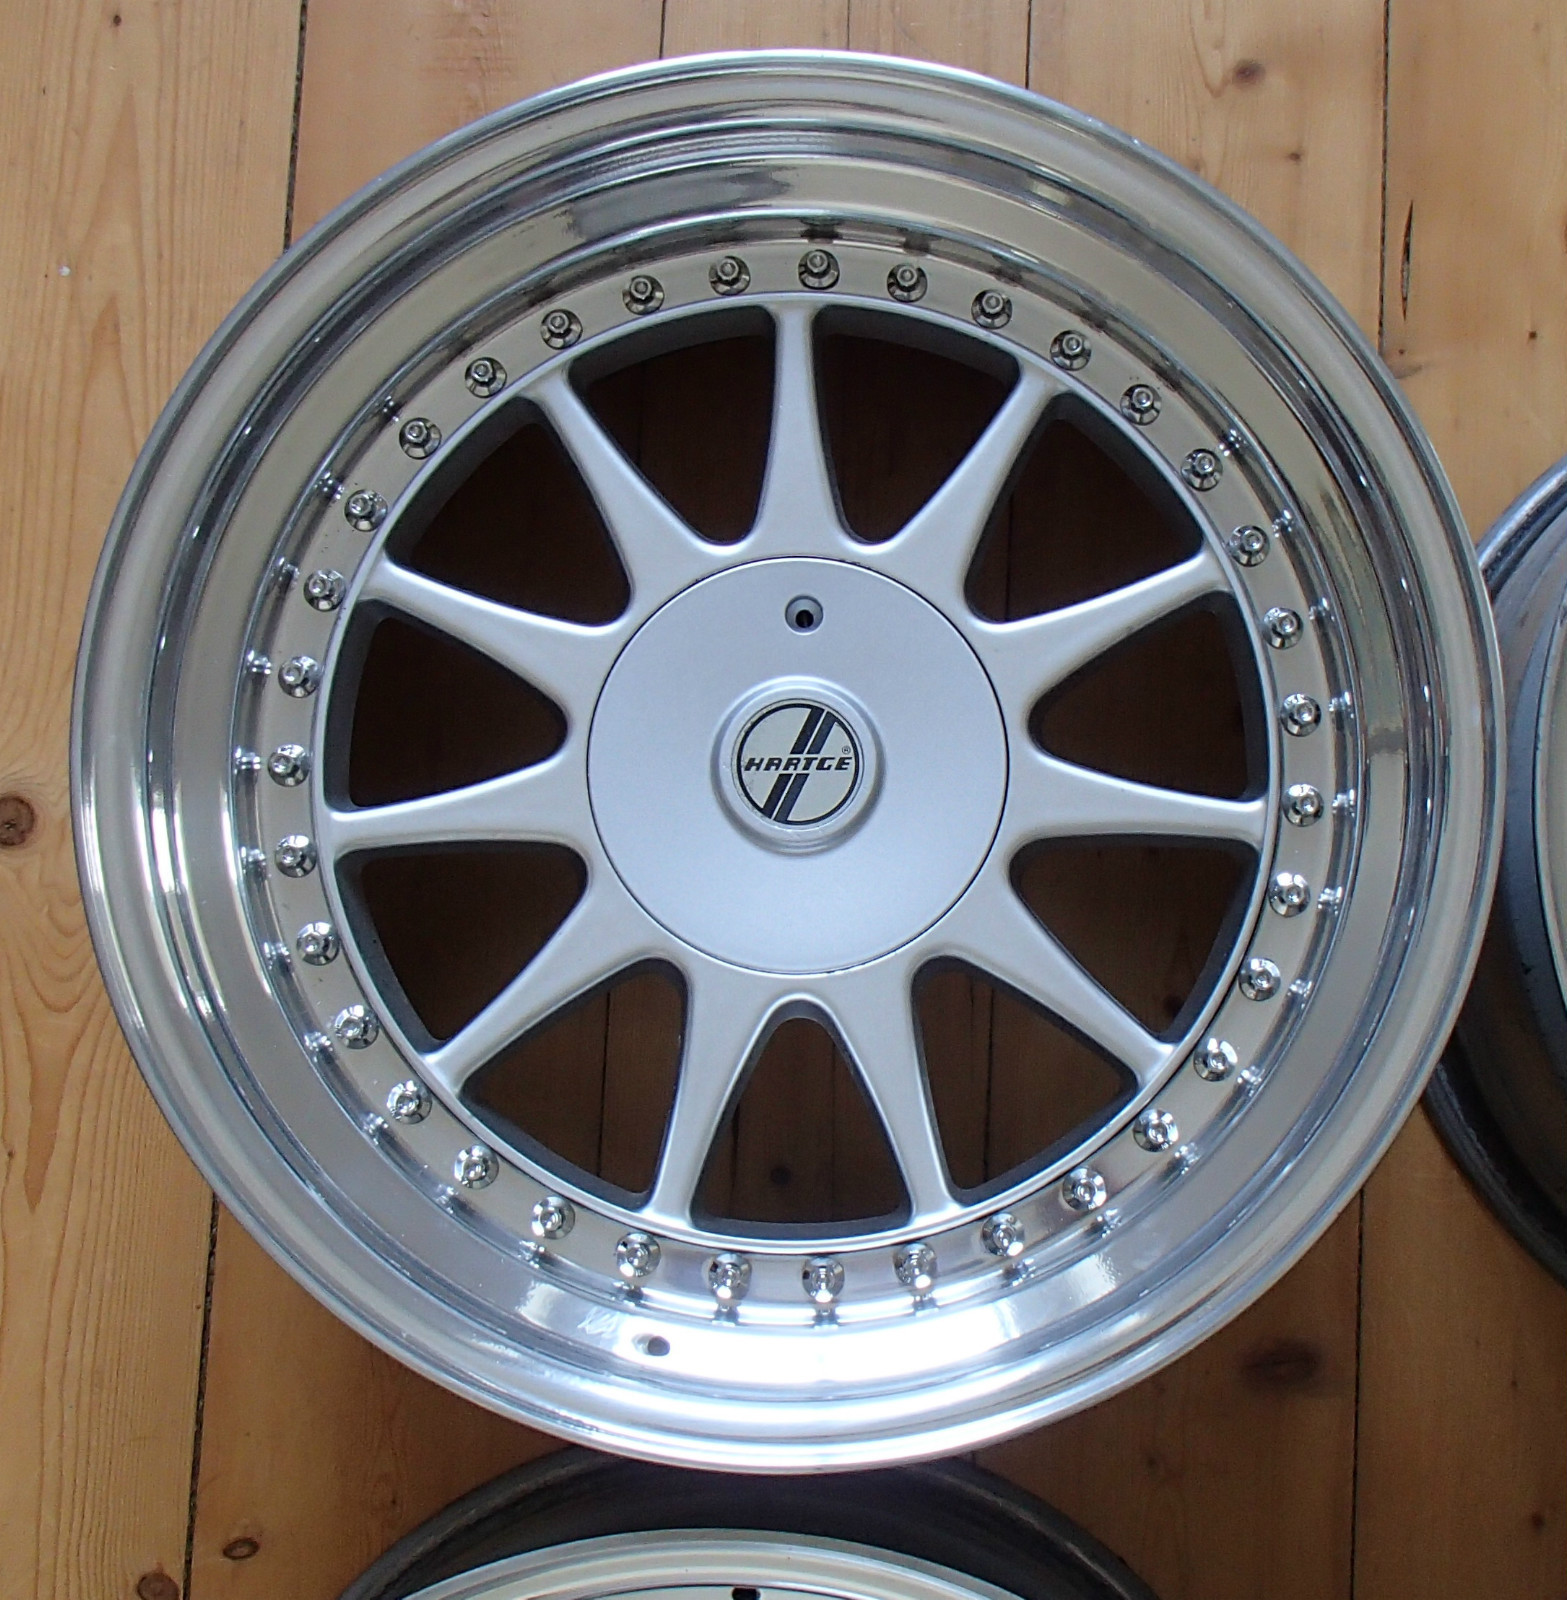 Oem Bmw Wheels >> Wednesday Wheels: The Best For Your BMW | German Cars For Sale Blog